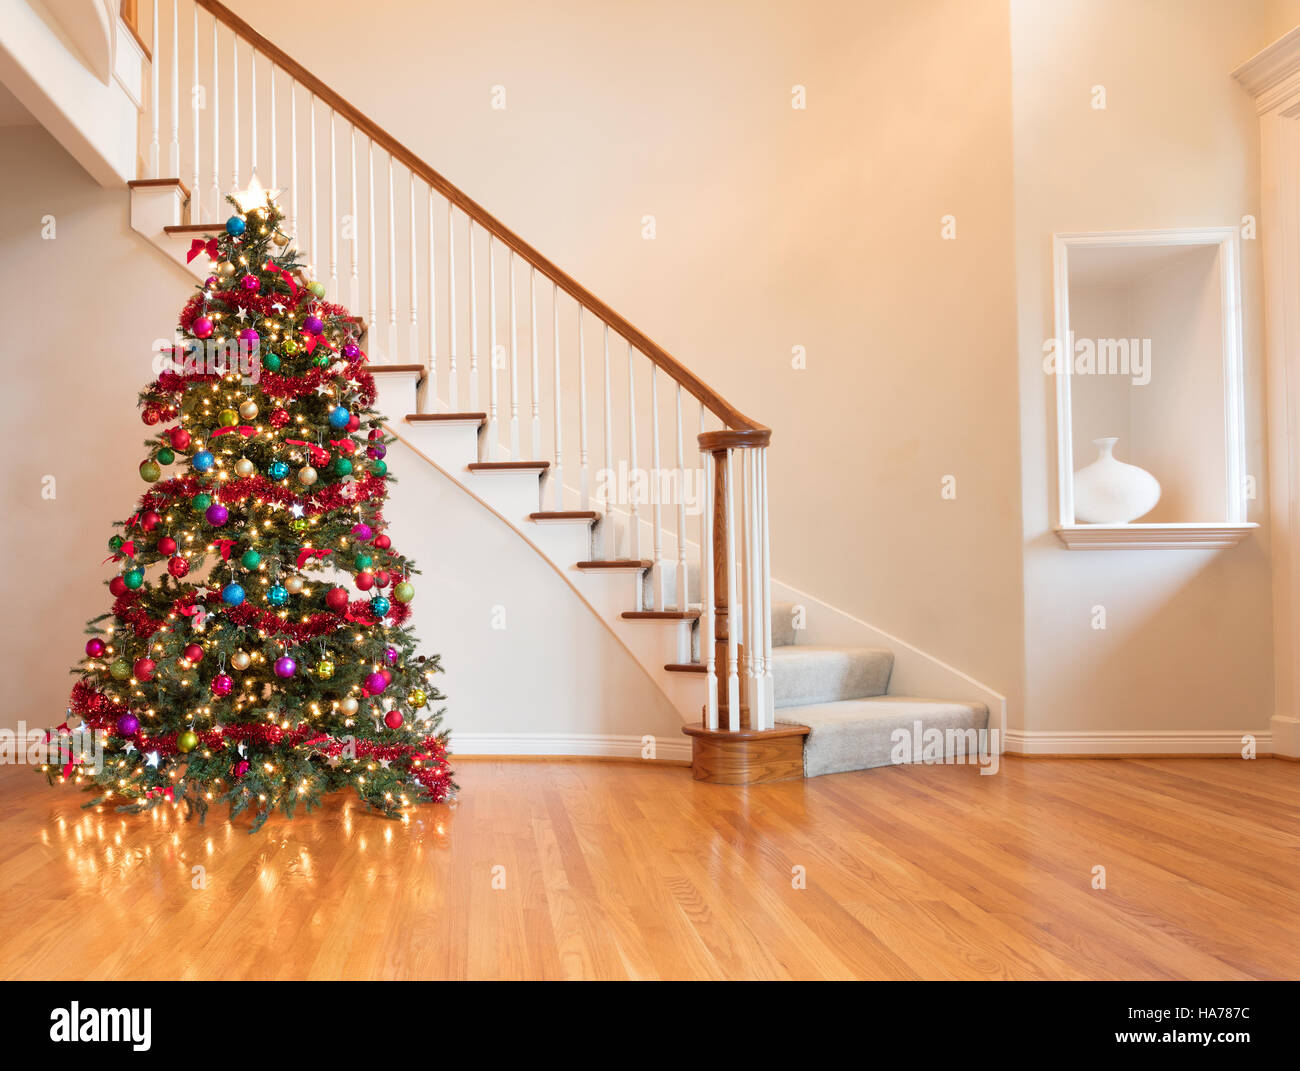 fully decorated christmas on wooden floor with staircase in background stock image - Fully Decorated Christmas Tree